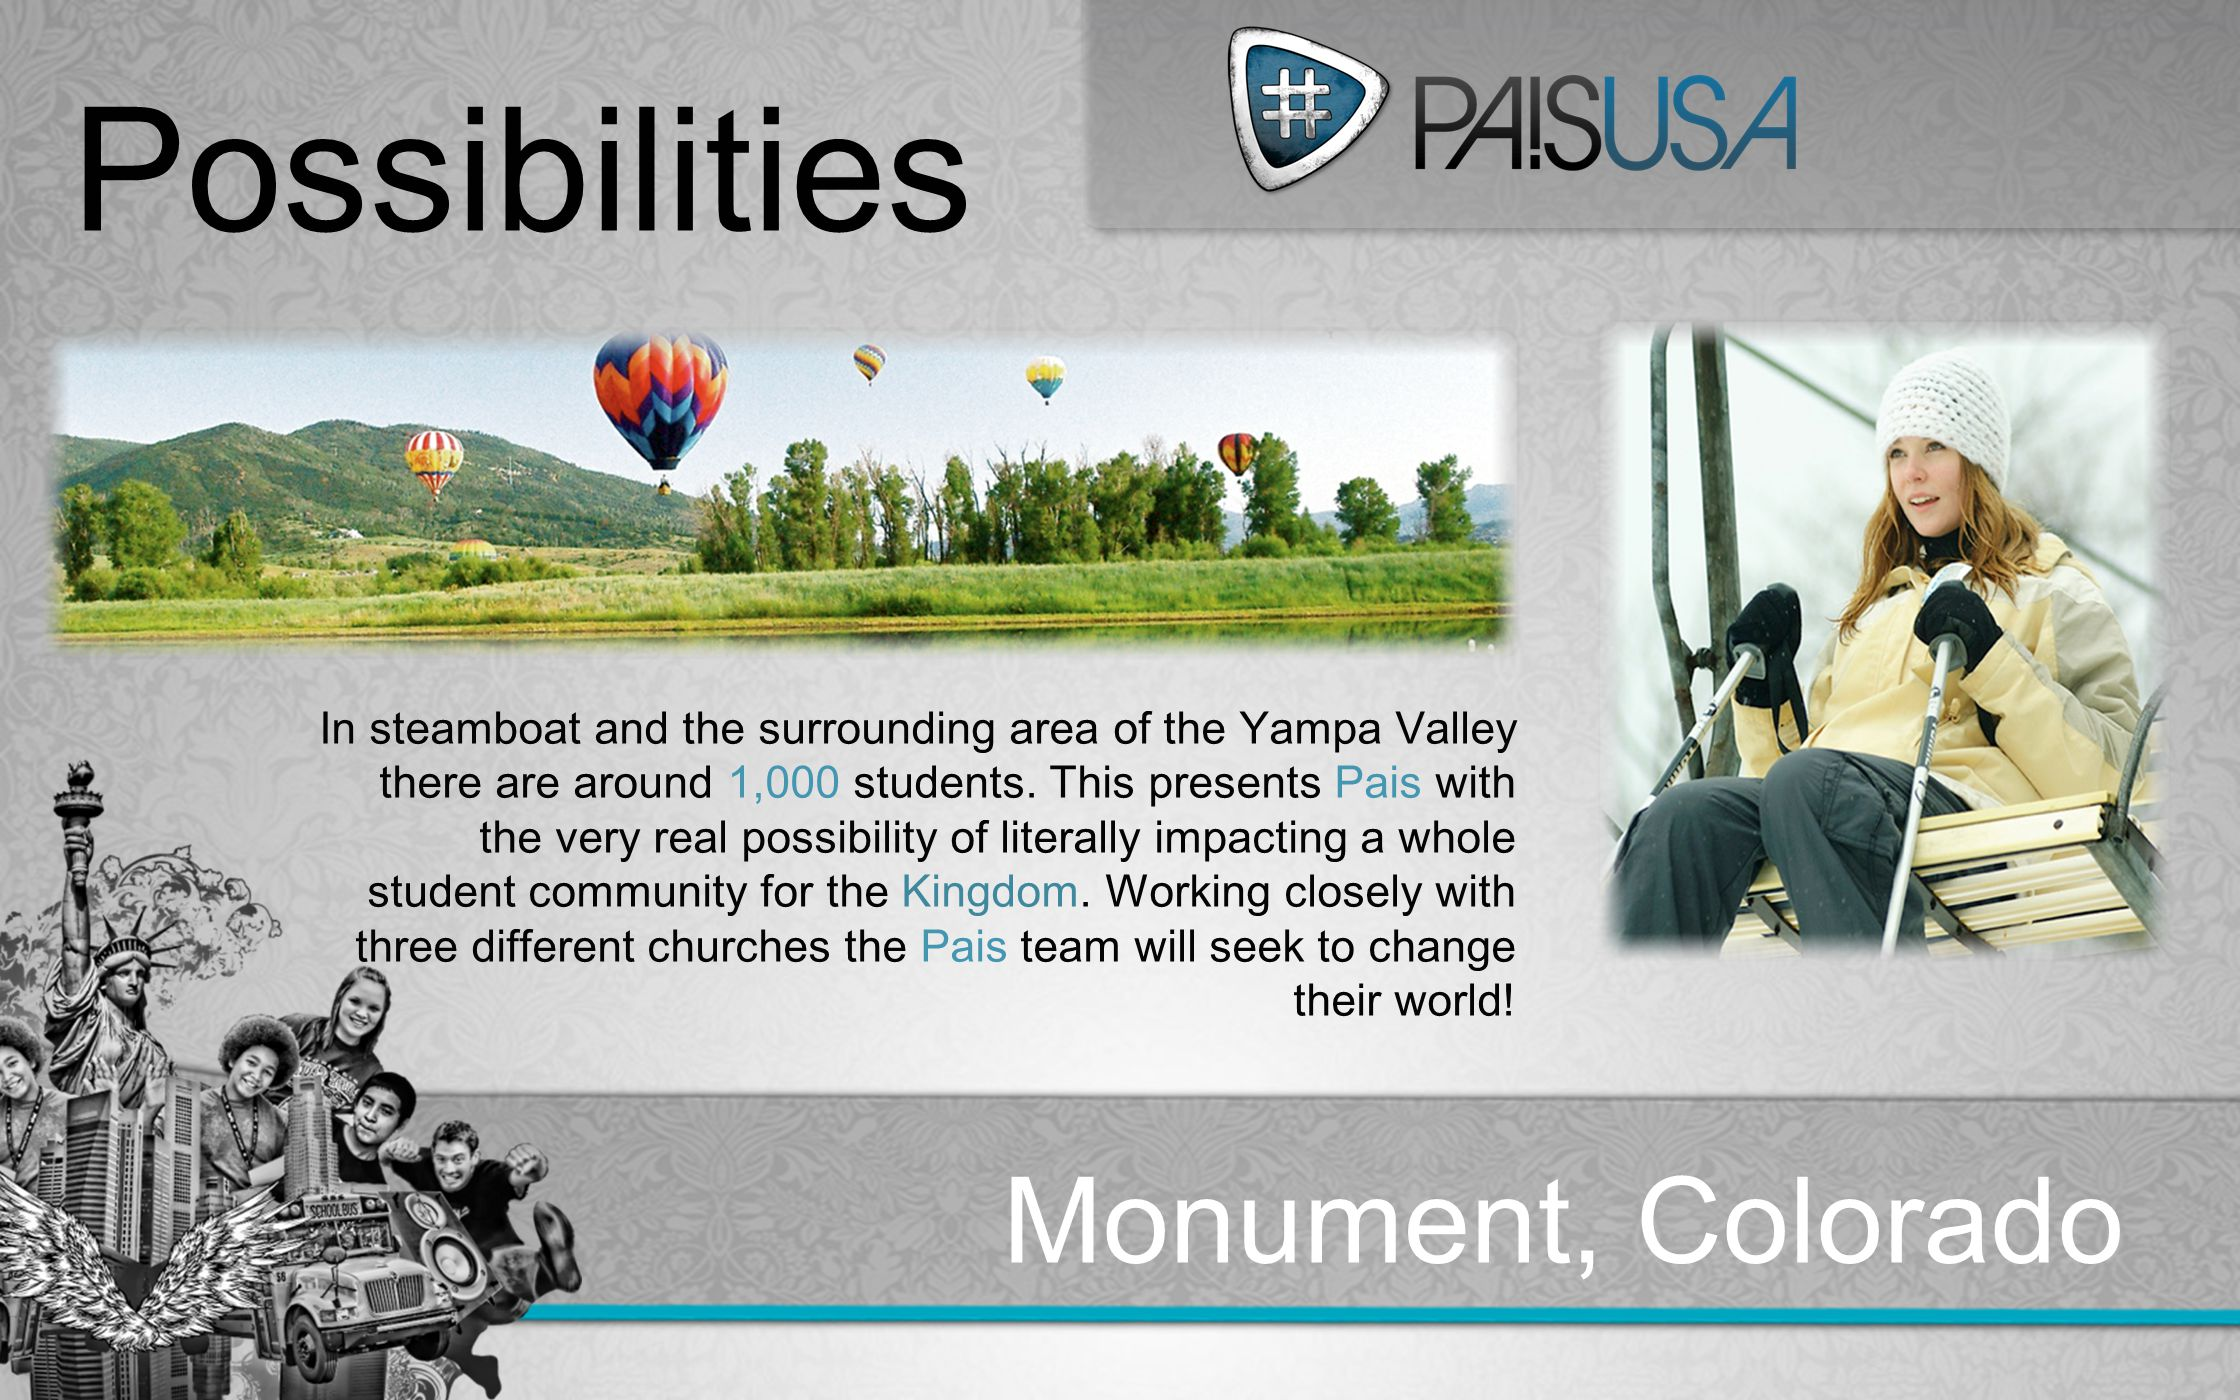 Colorado Metro:Track In steamboat and the surrounding area of the Yampa Valley there are around 1,000 students.